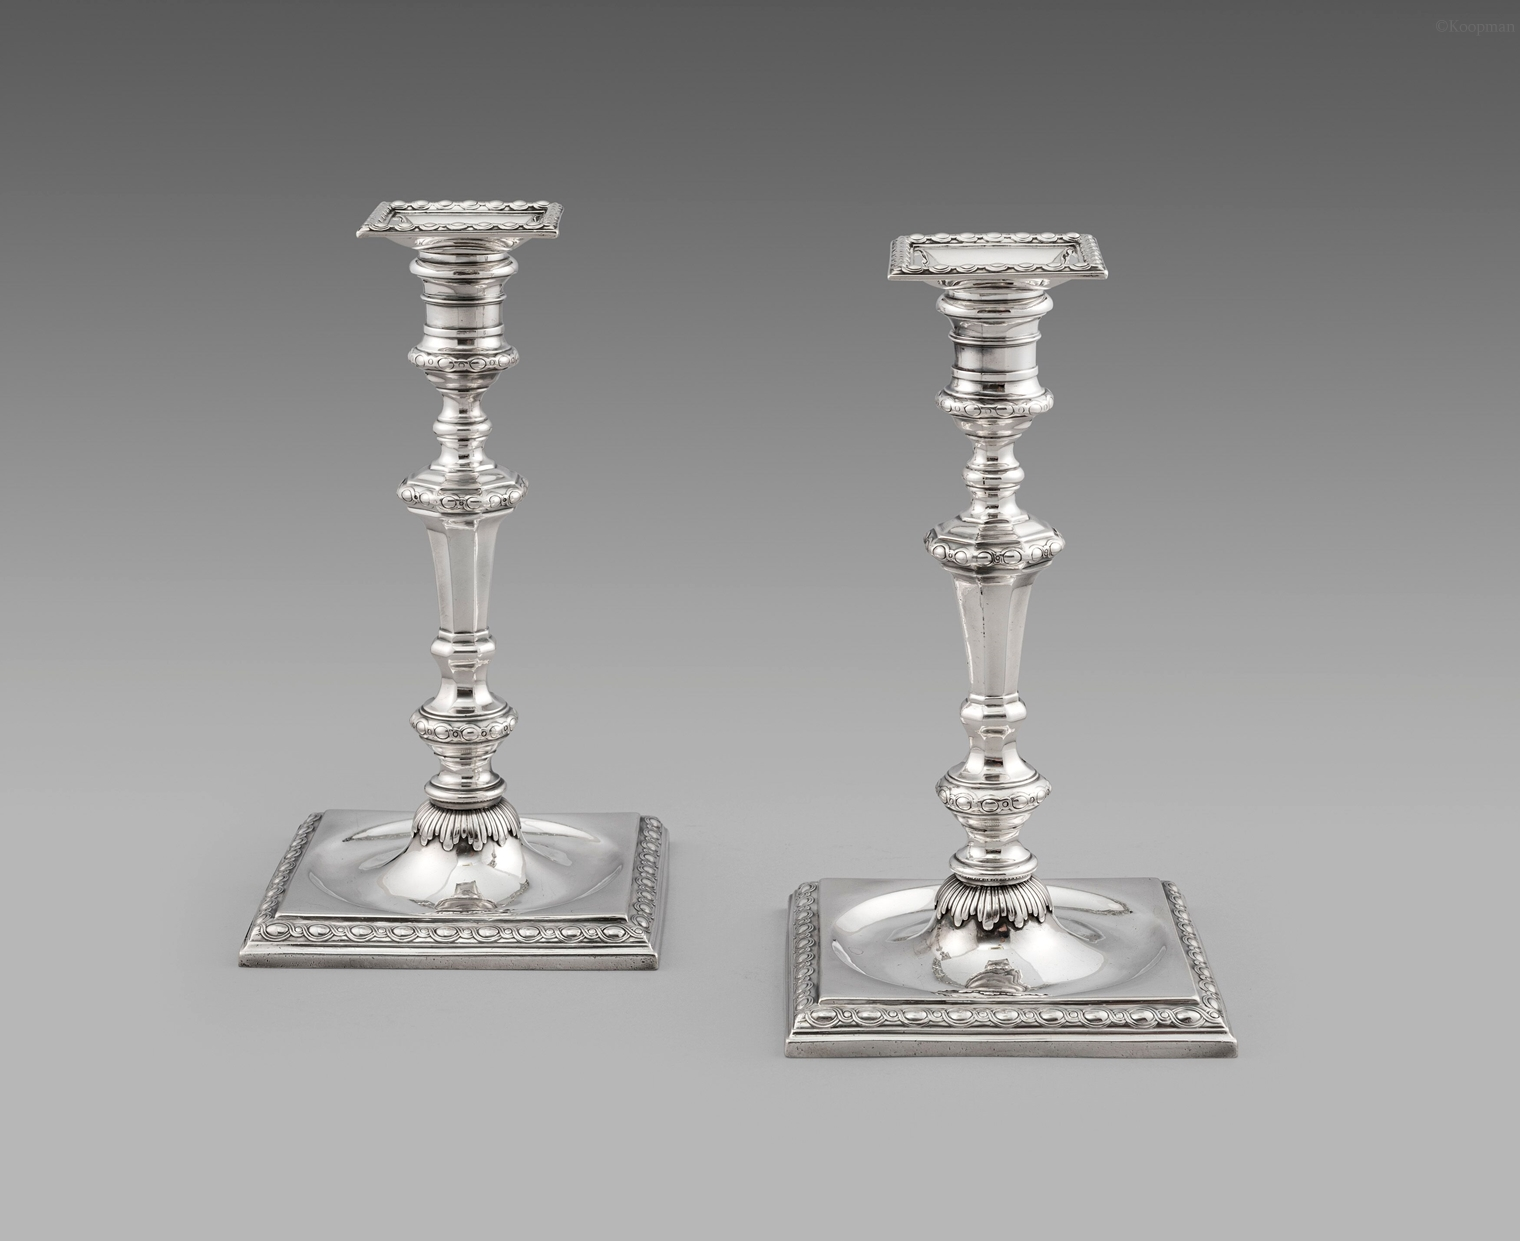 A Pair of Square-based Neo-Classical Candlesticks